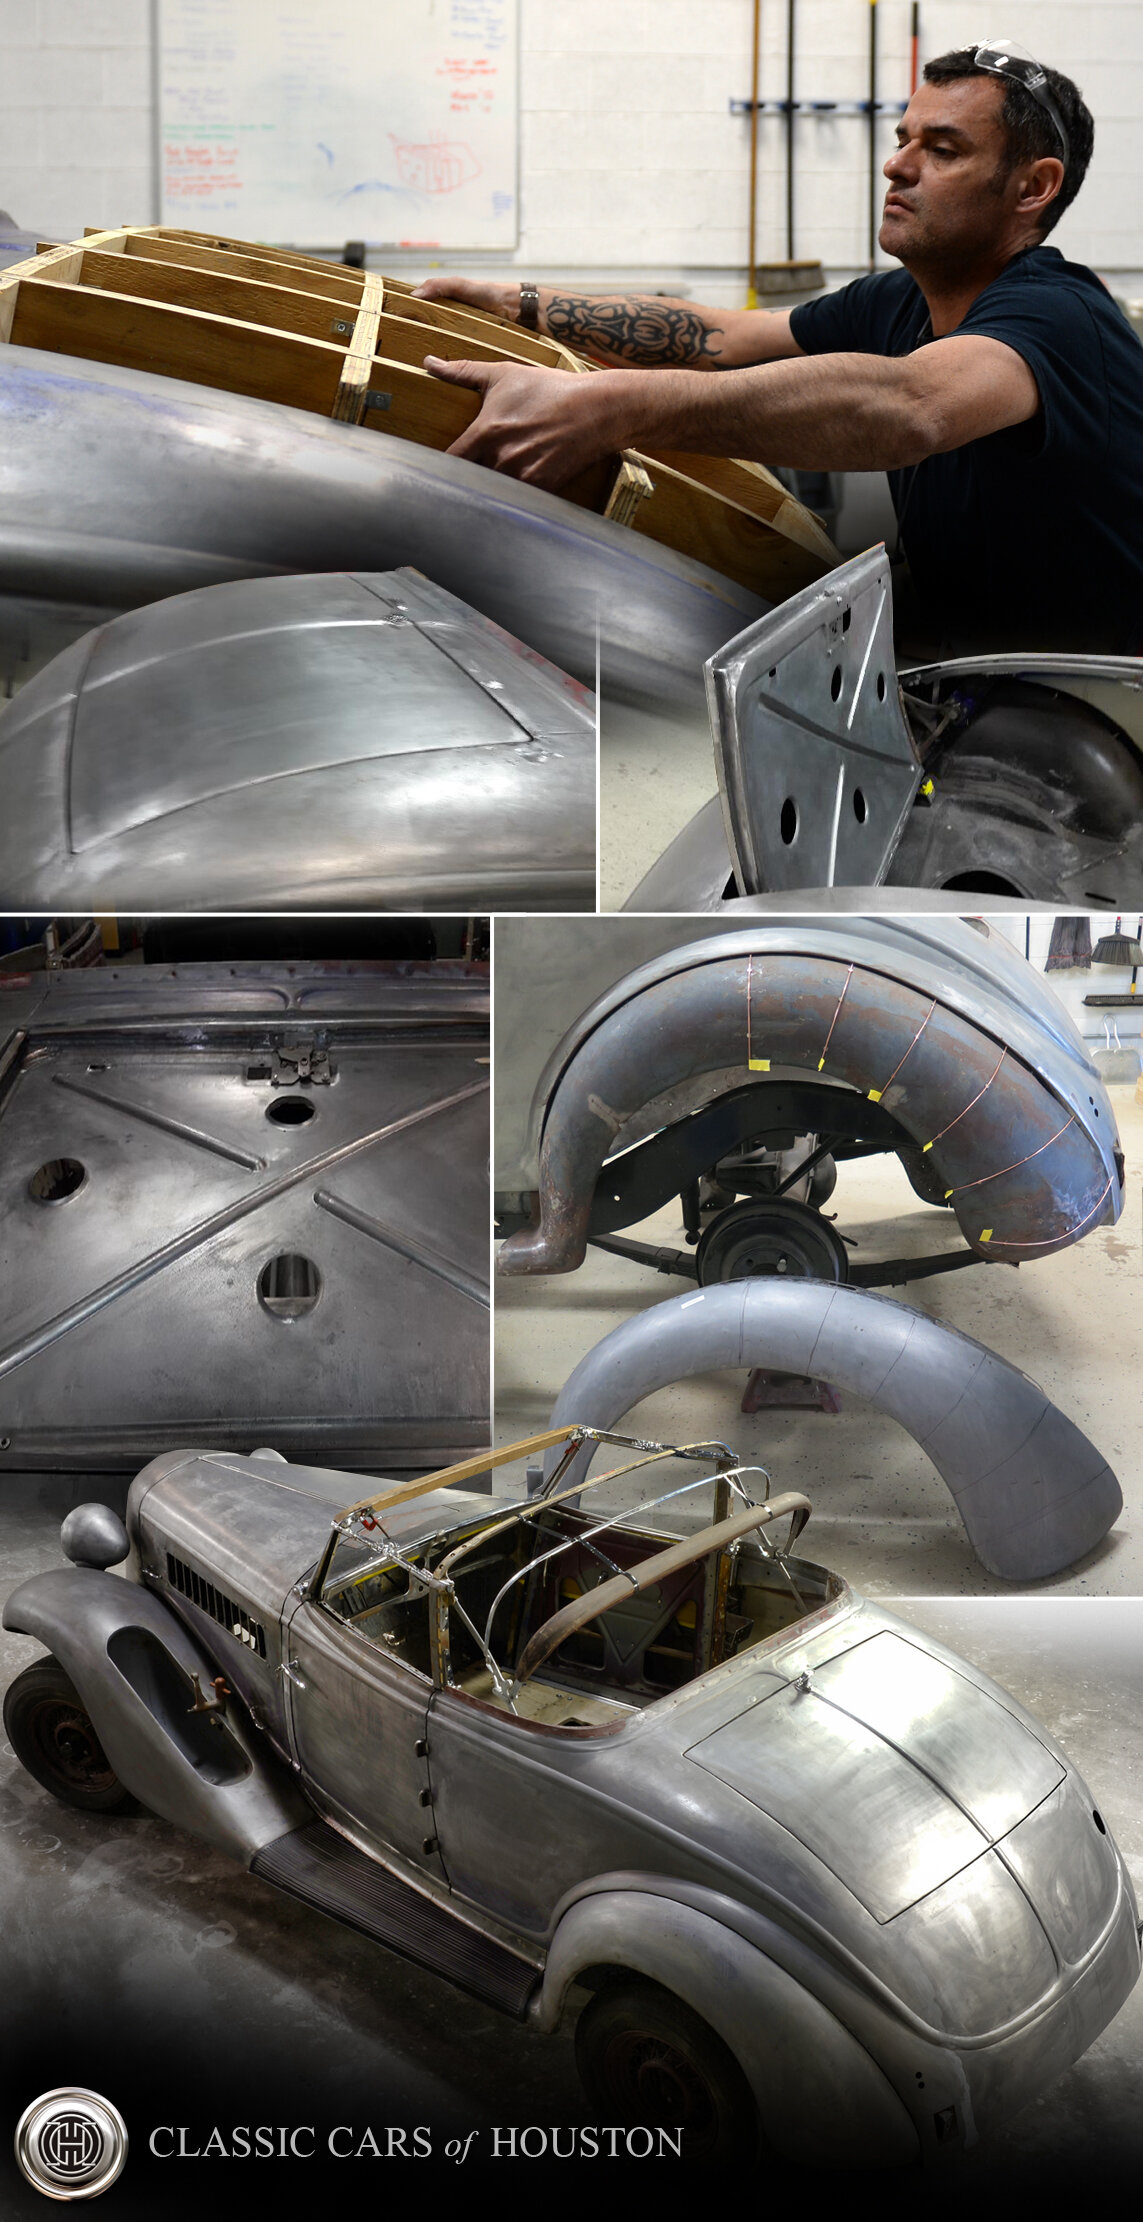 Classic Cars of Houston turns back time by removing years of bondo and lead from old rusted body panels bringing the metal work back to its original state... metal. With our in-house metal craftsmen we can recreate any body panel, frame or part imaginable which is truly becoming a lost art.